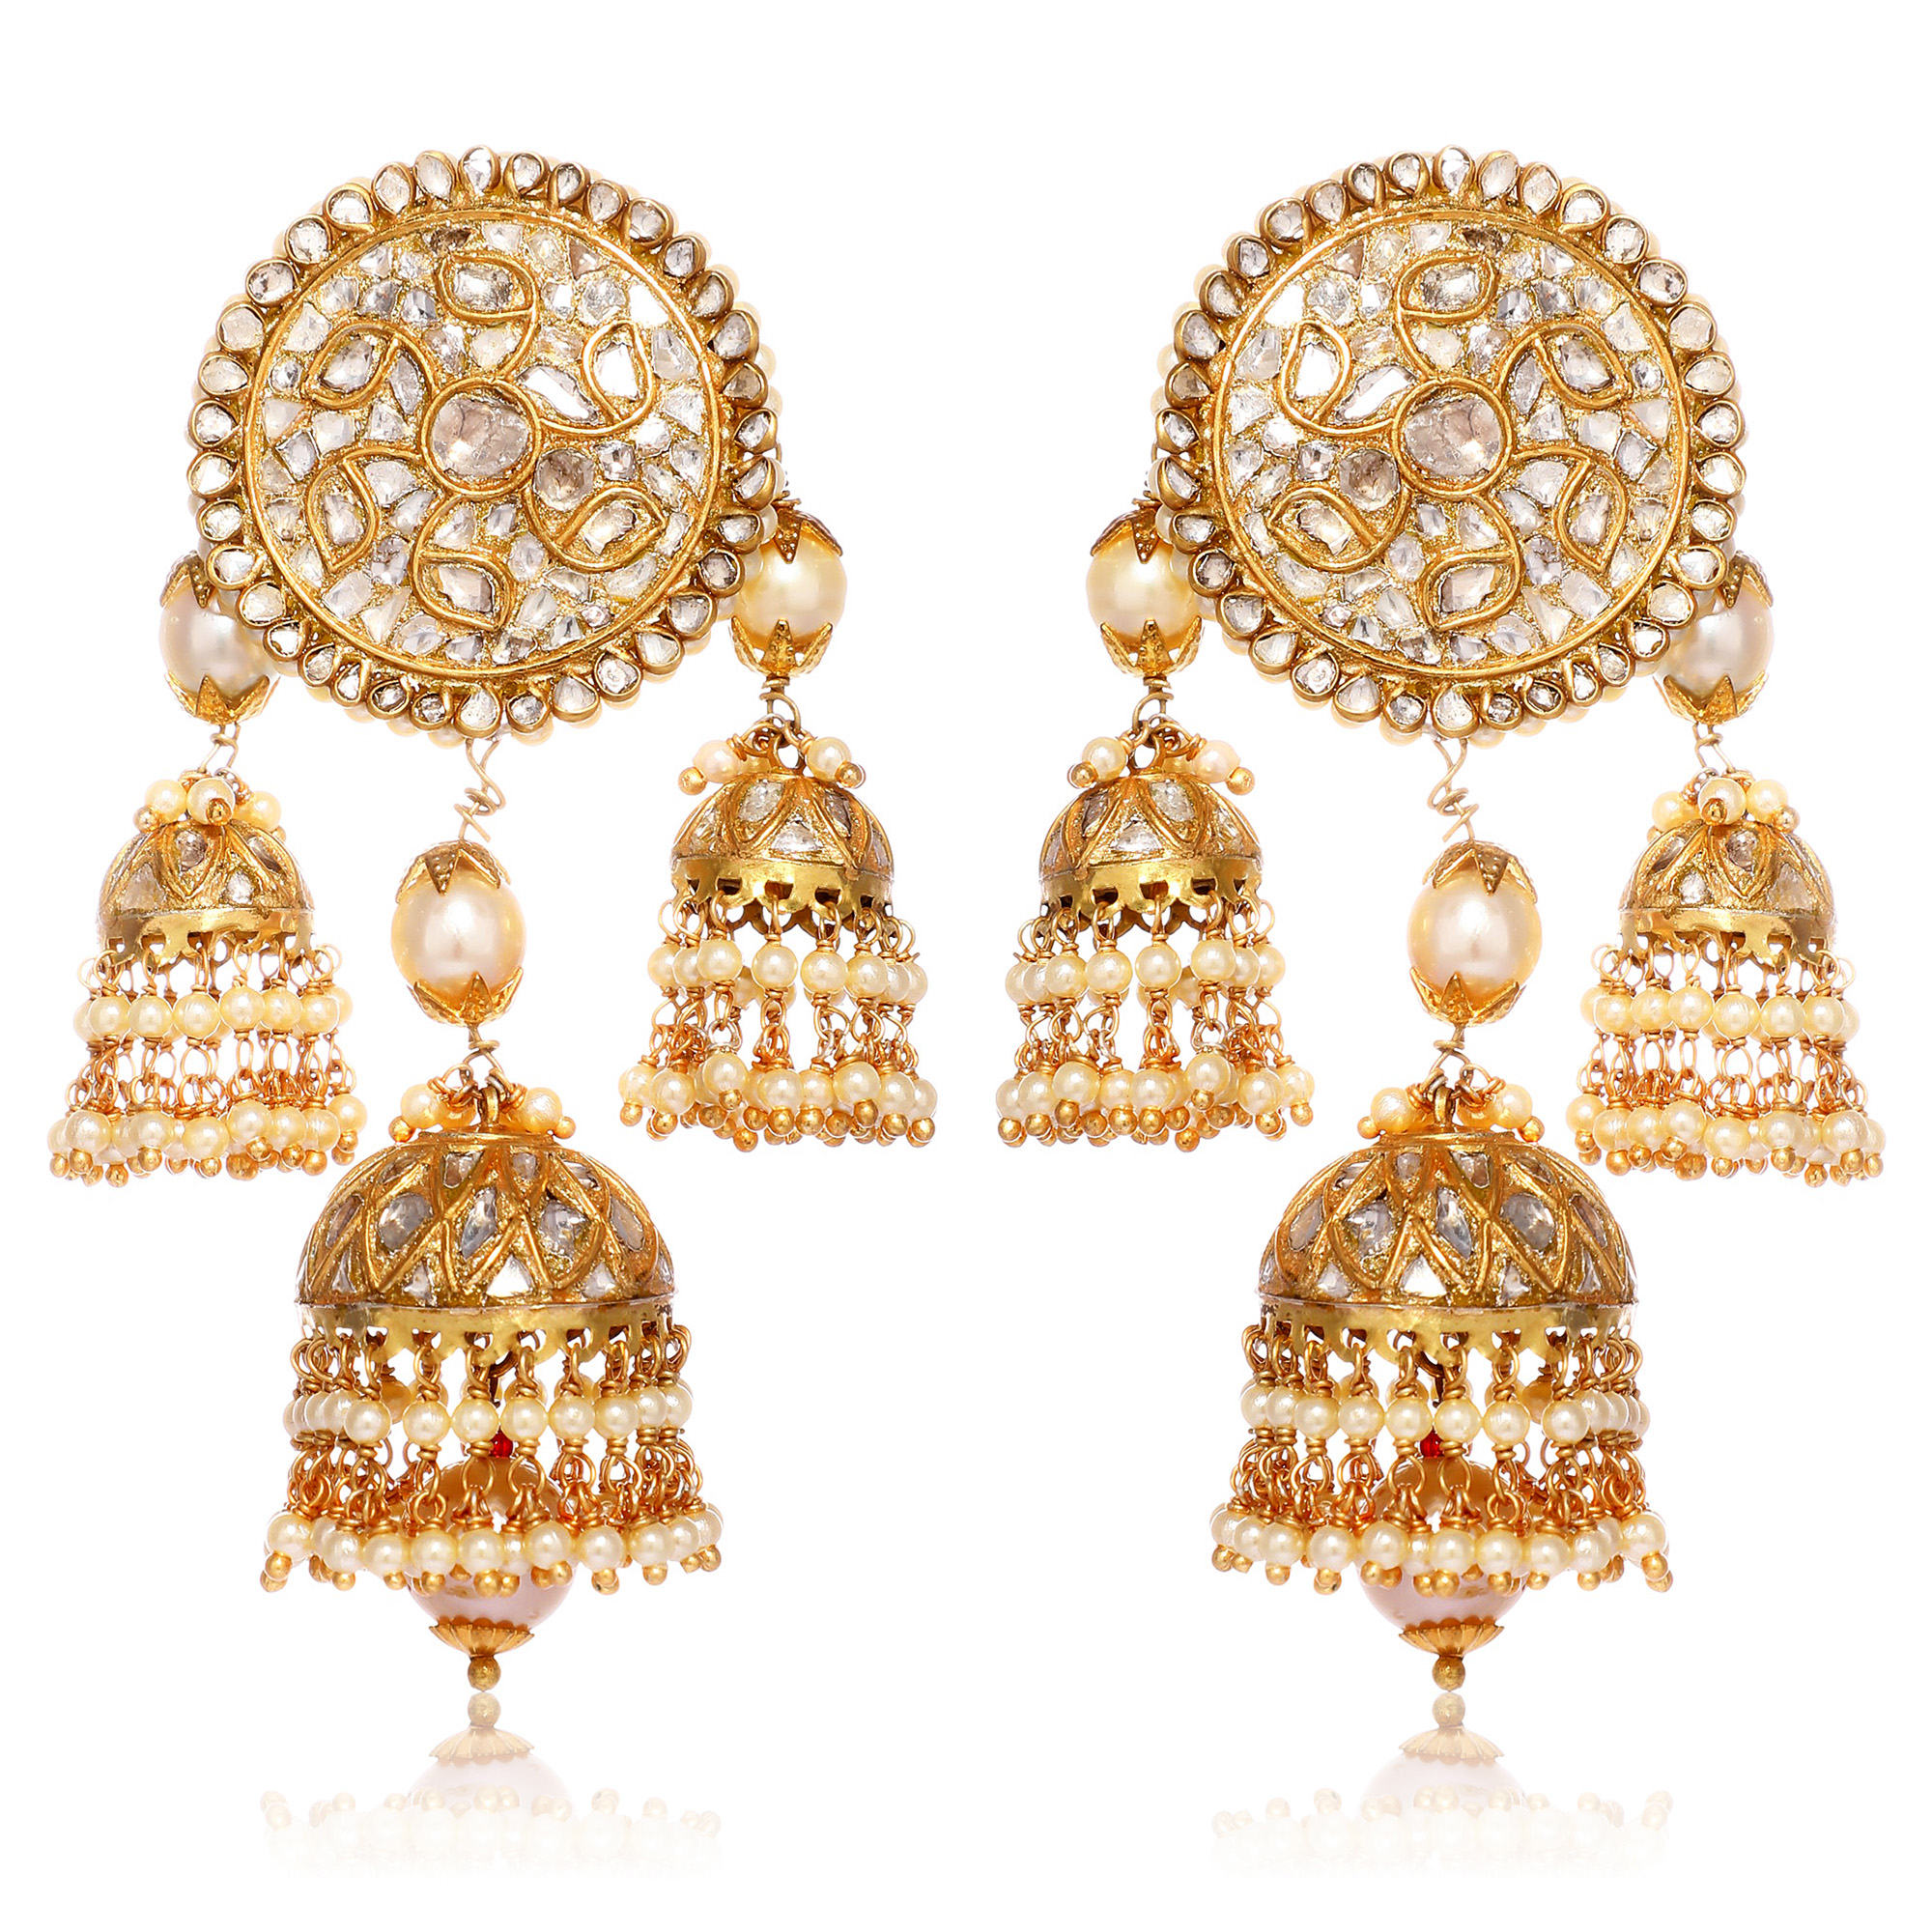 22k-gold-earrings